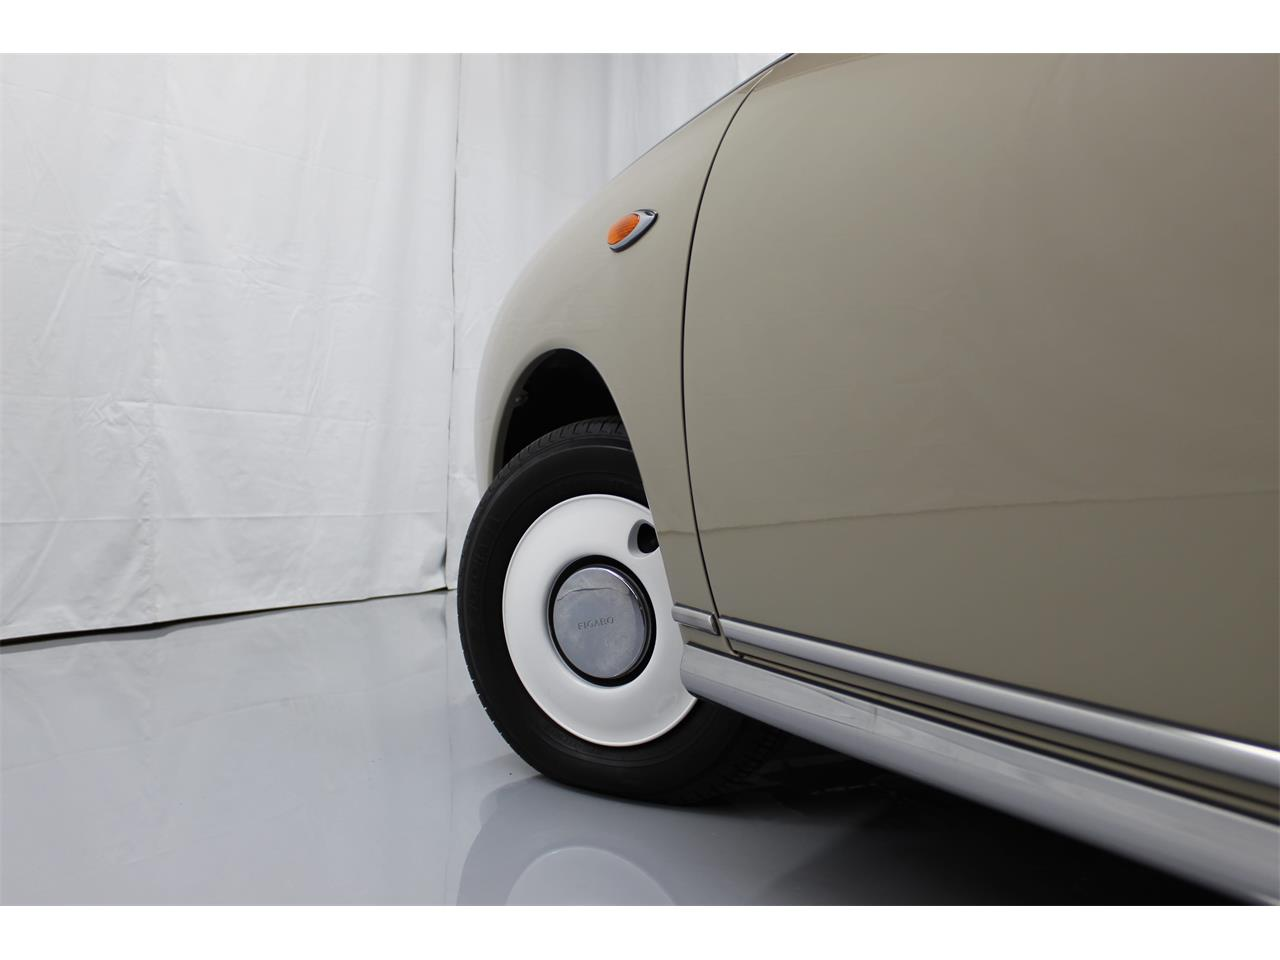 1991 Nissan Figaro for sale in Christiansburg, VA – photo 18